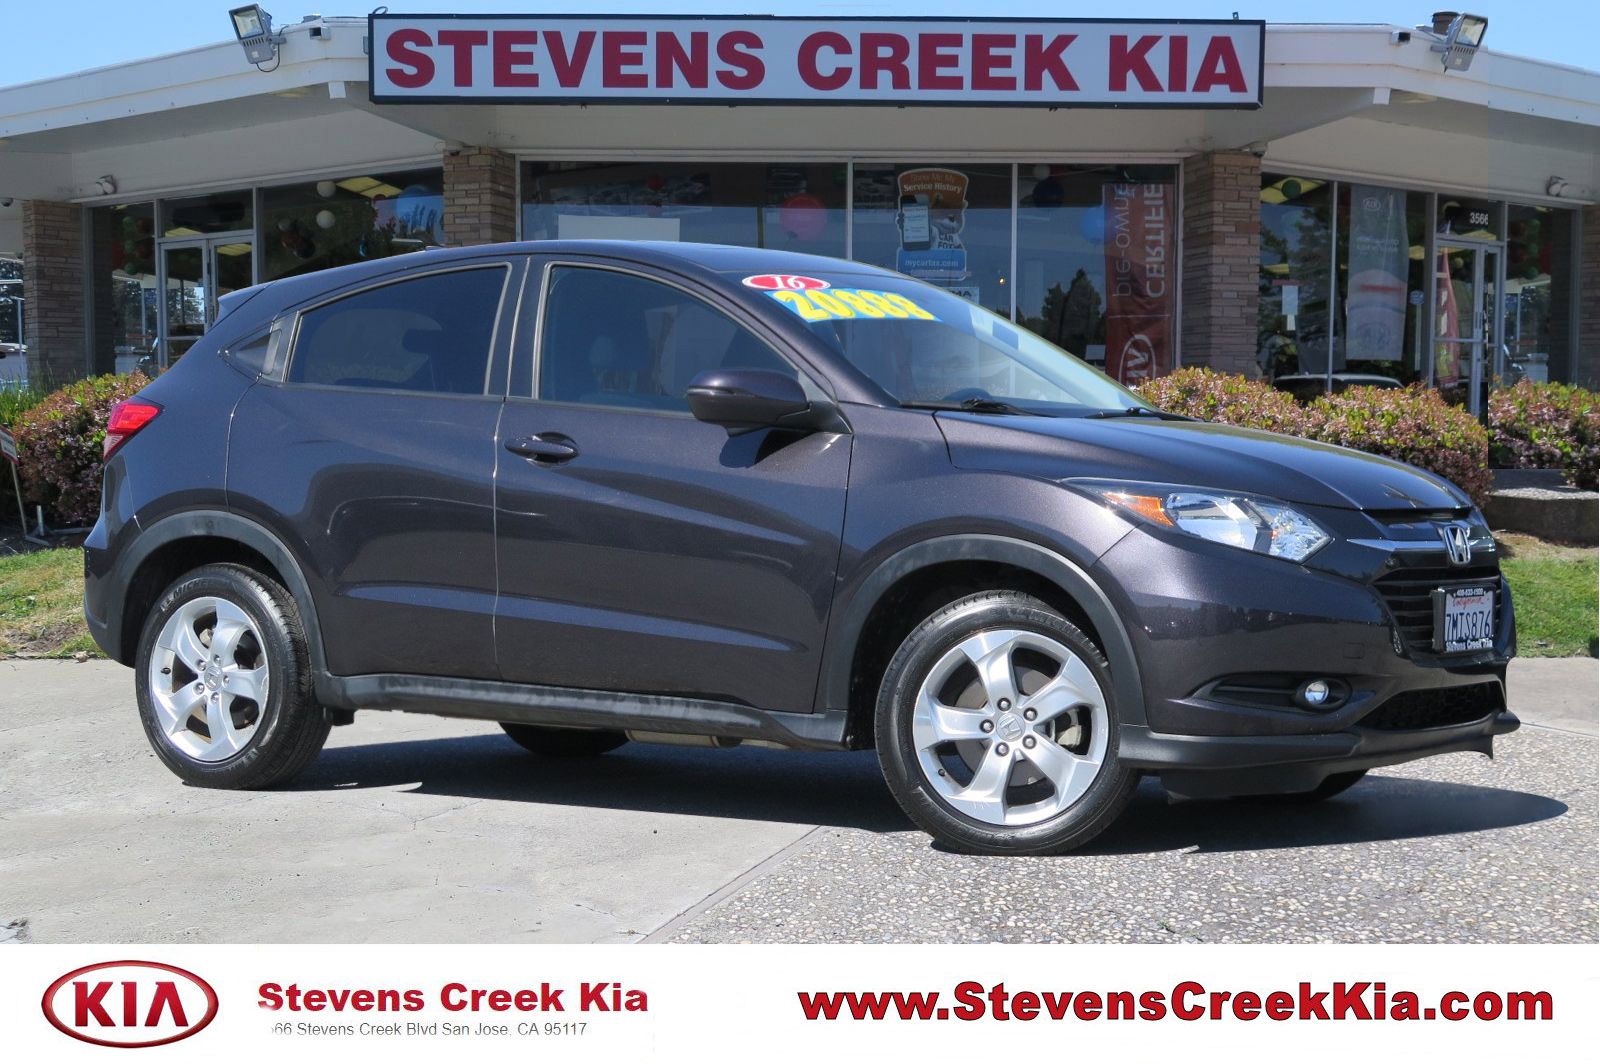 Stevens Creek Kia